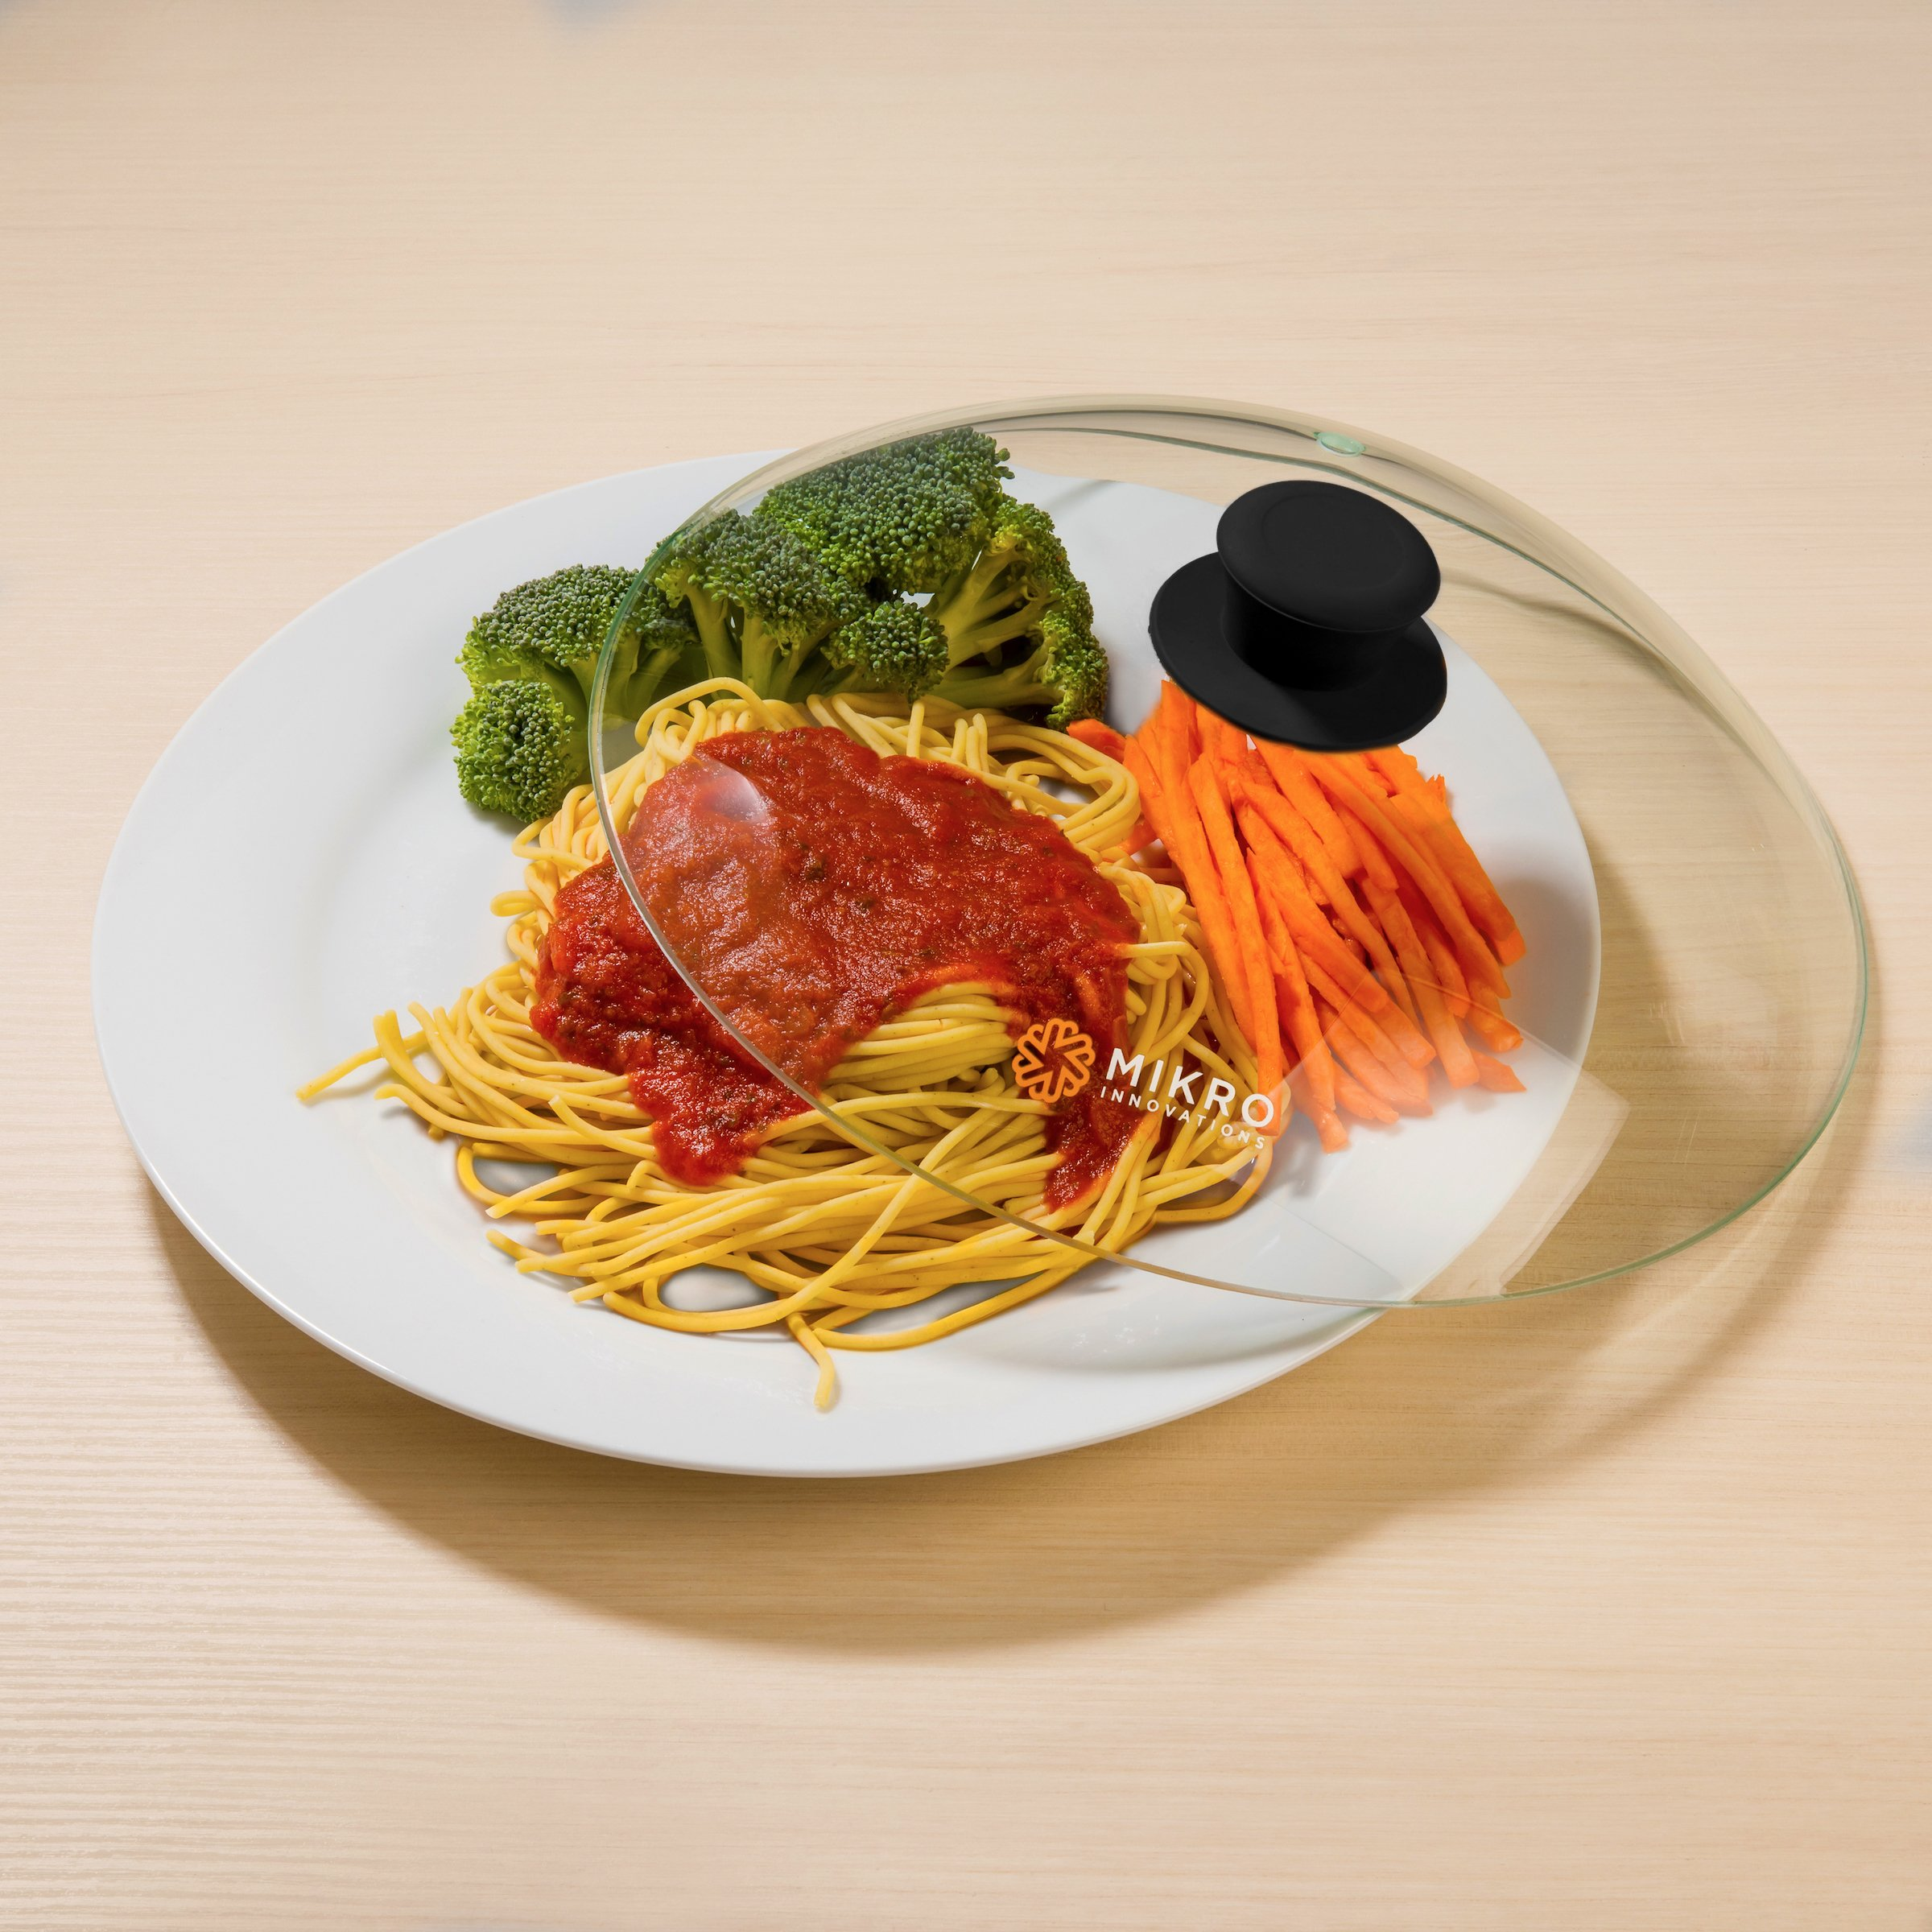 Vented Microwave Glass Food Plate Cover Lid with Firm Grip Silicone Handle and Hardened Safe Tempered Glass Design - Black Knob by Mikro Innovations (Image #4)